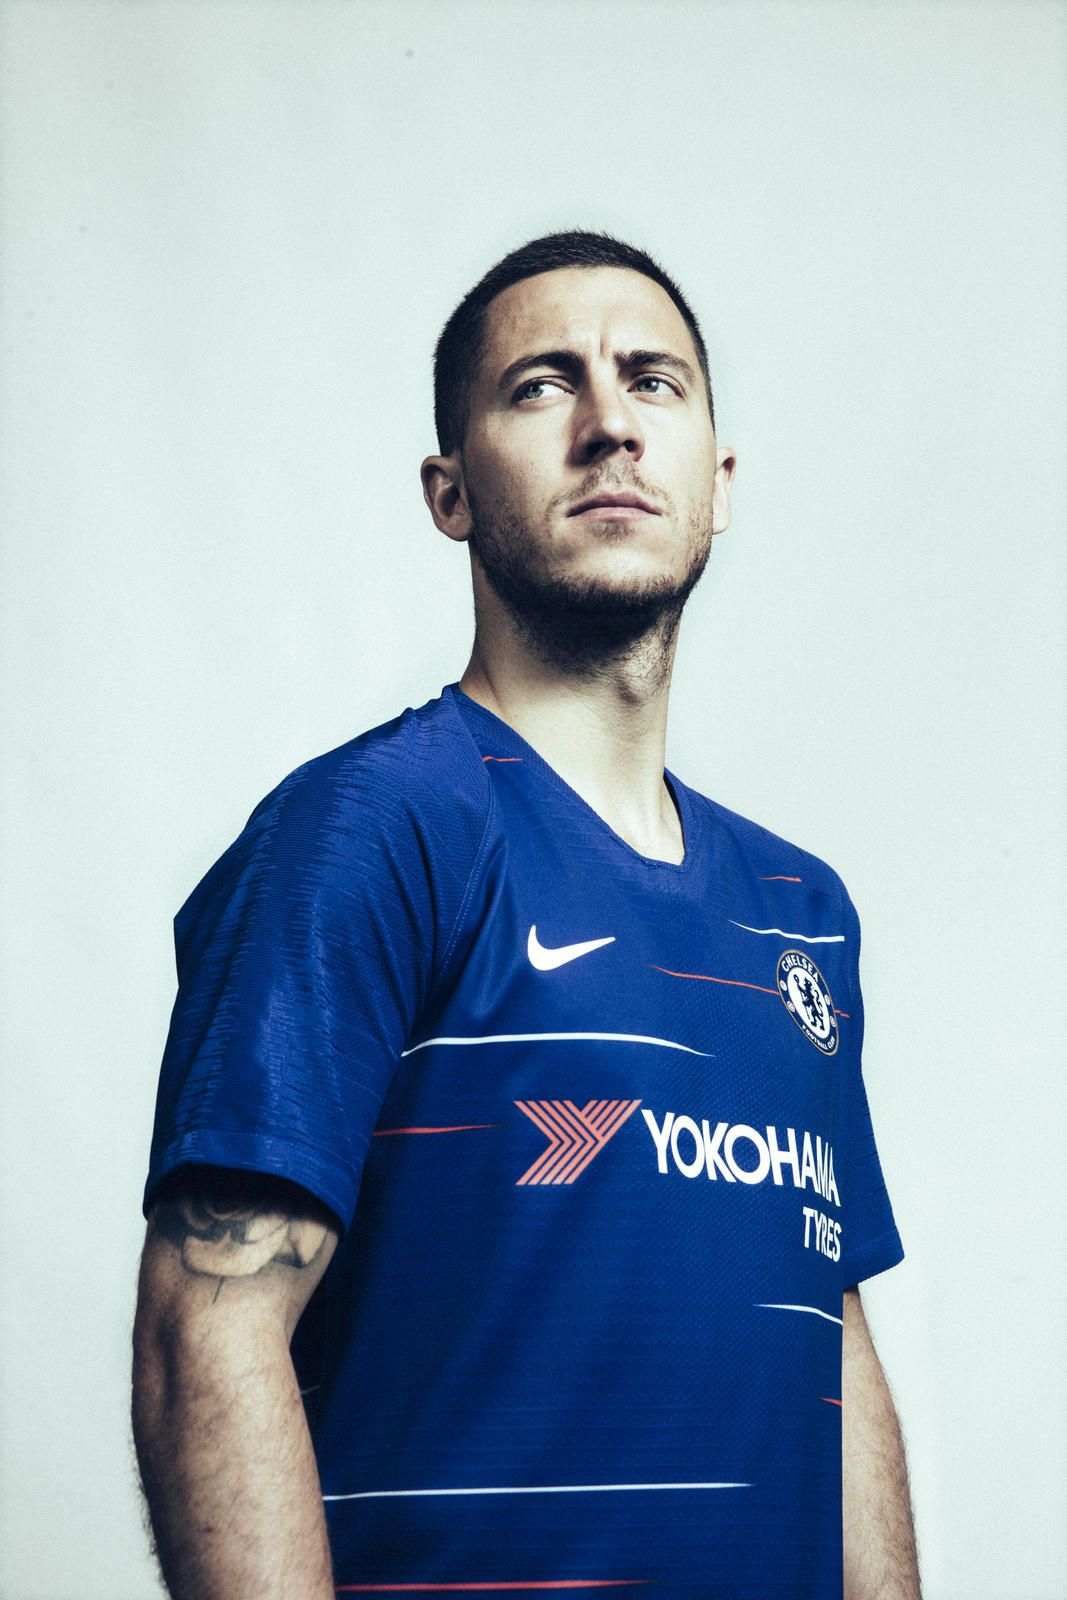 1594e7f9b60 2018-19 Chelsea Home Kit | Athlete | Eden hazard chelsea, Chelsea ...